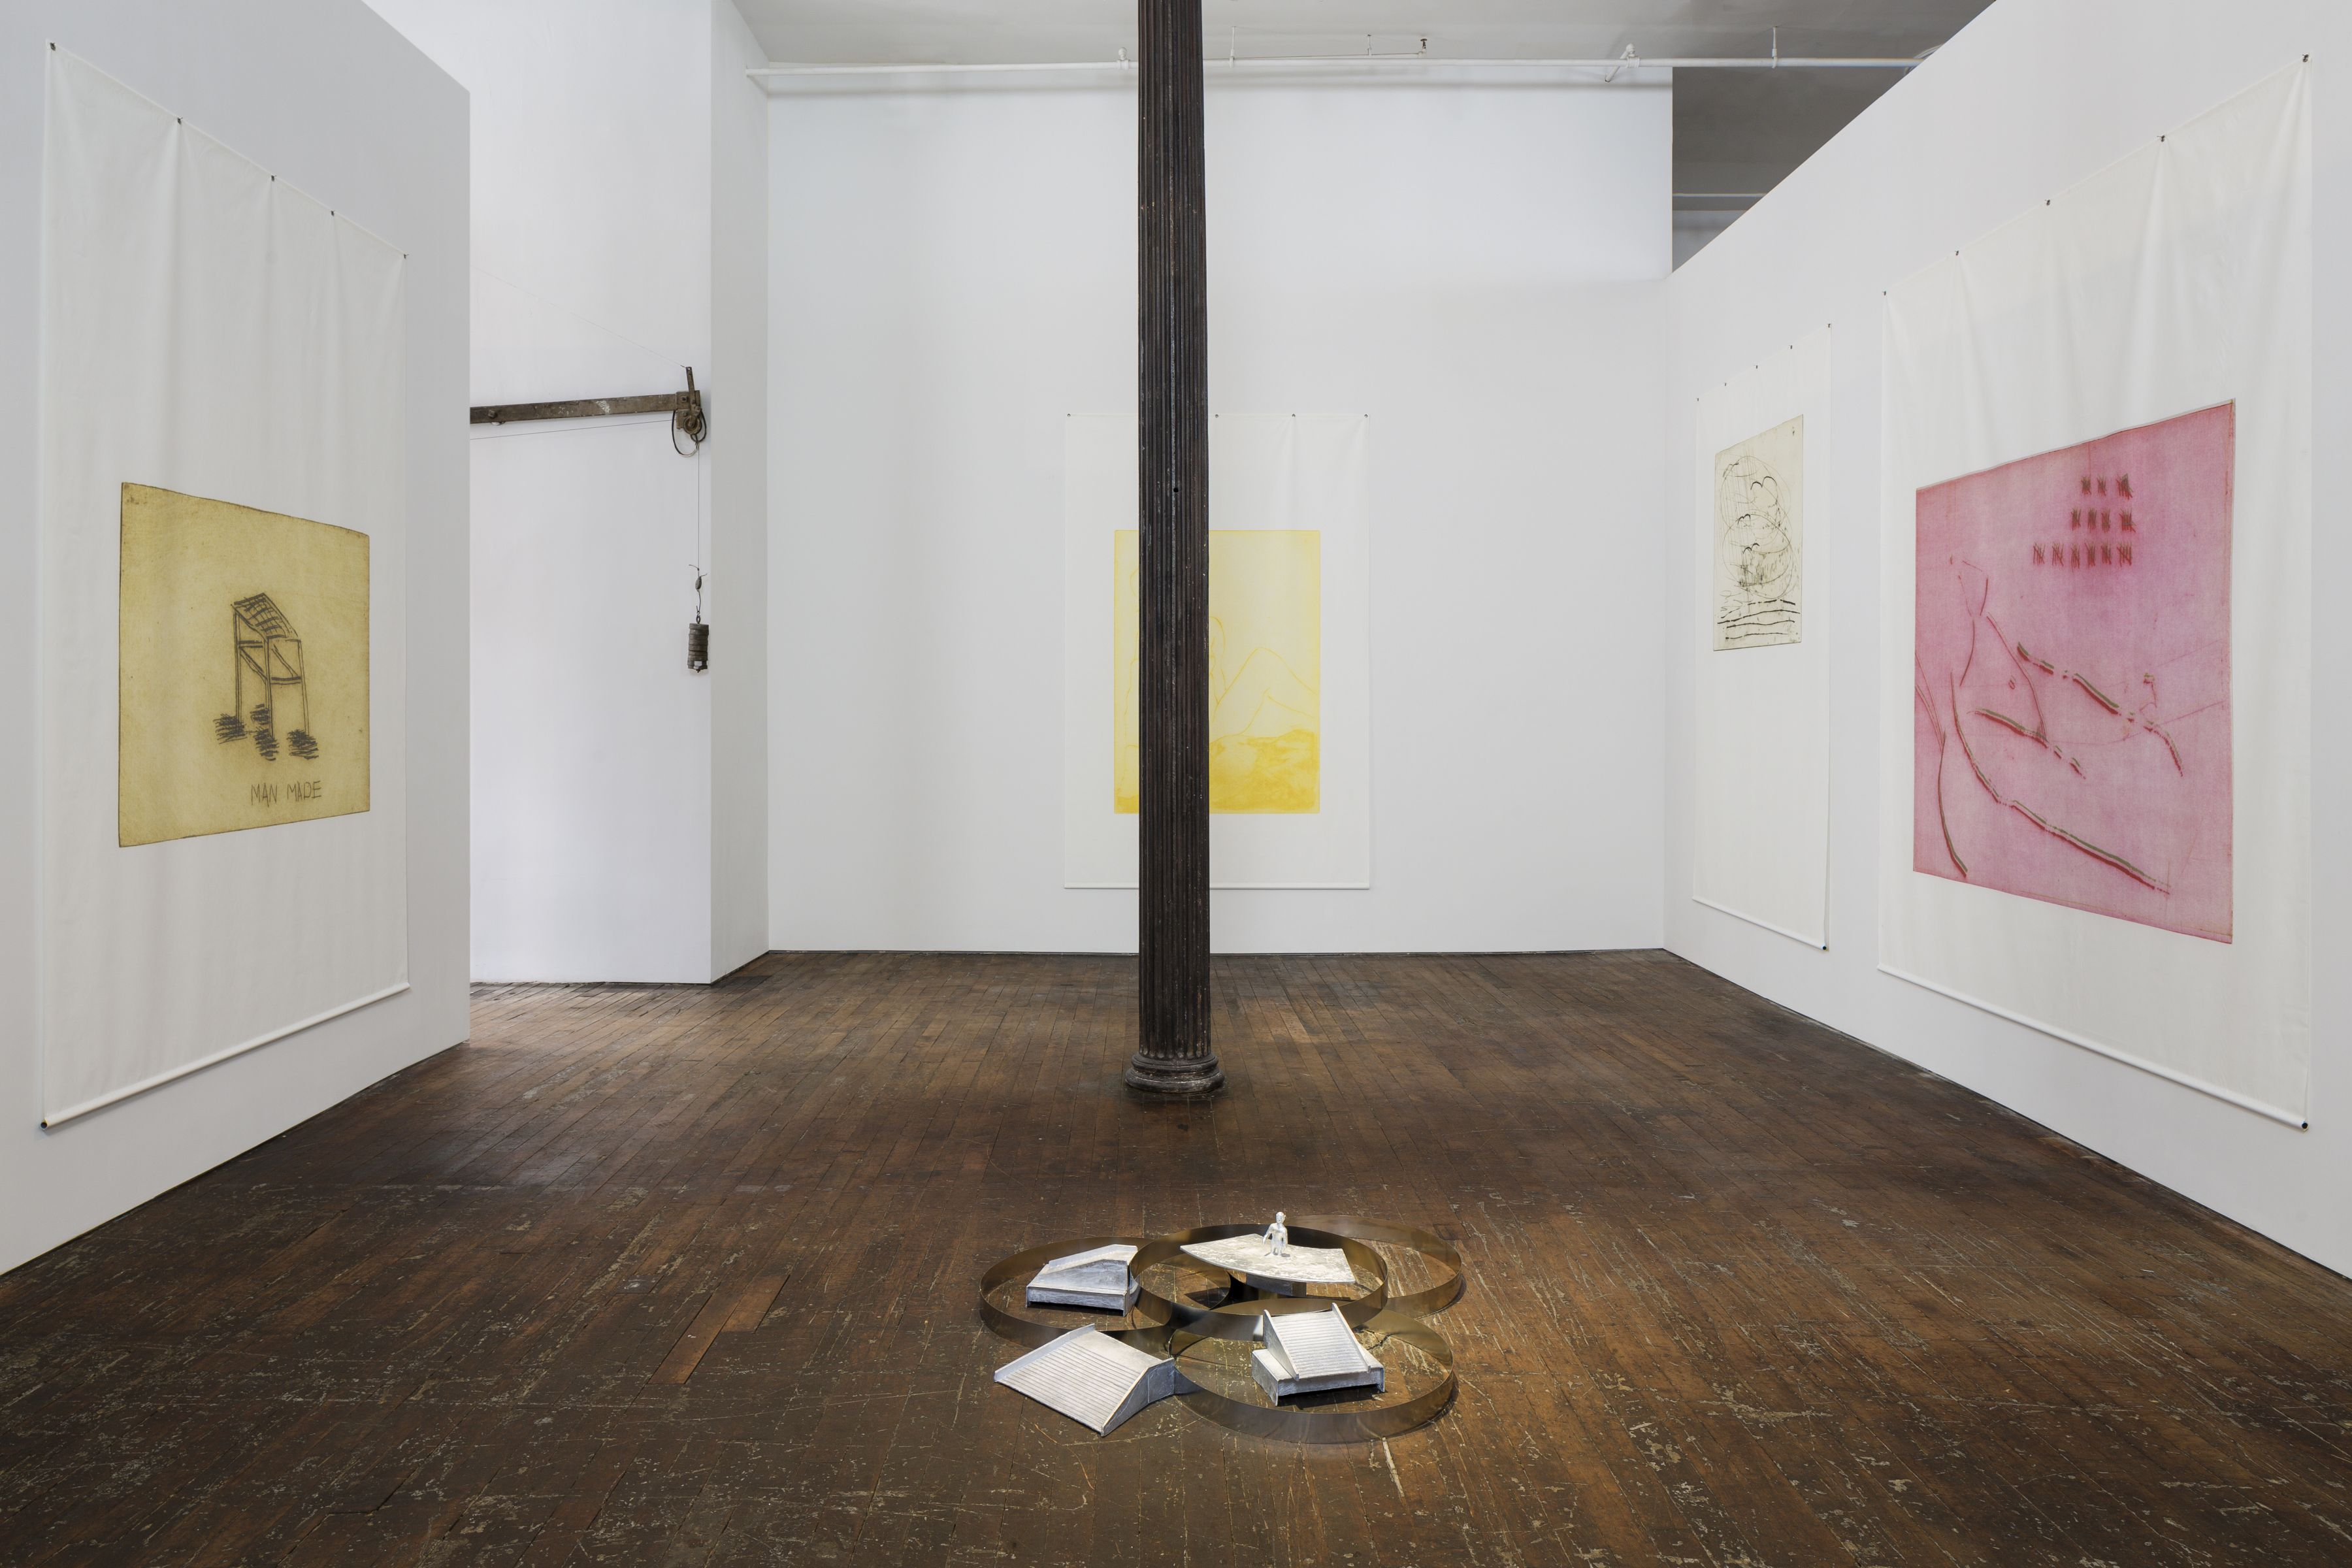 Thomas Schütte – installation view 4